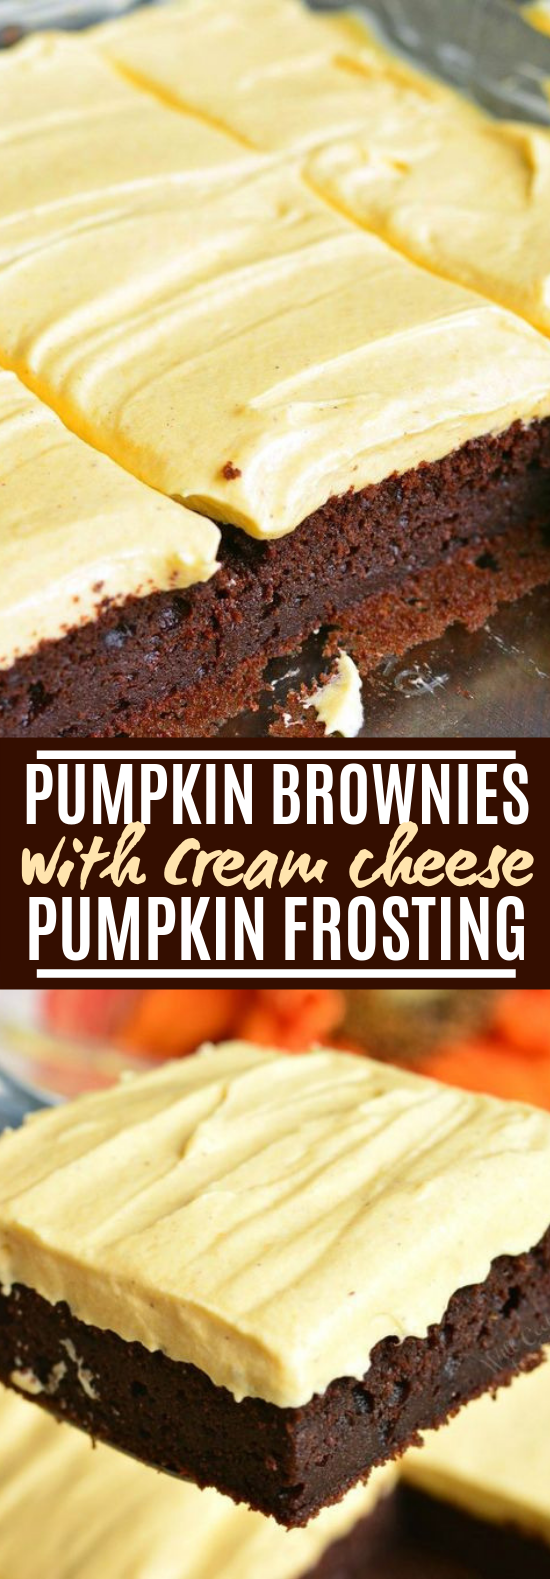 Frosted Pumpkin Brownies #desserts #cake